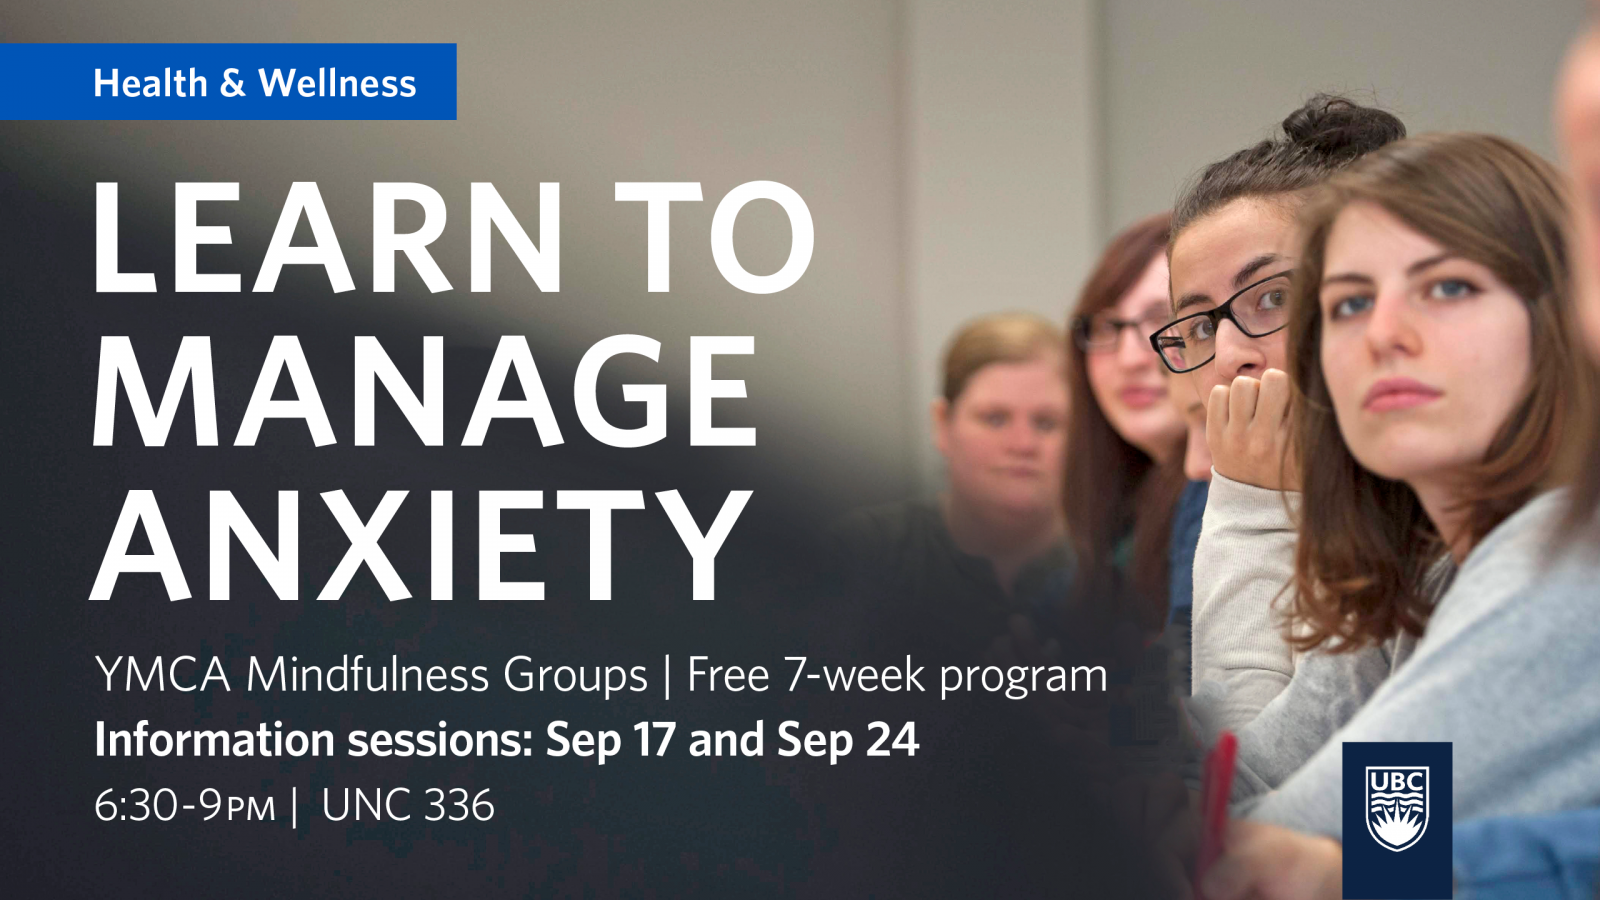 Learn to manage anxiety